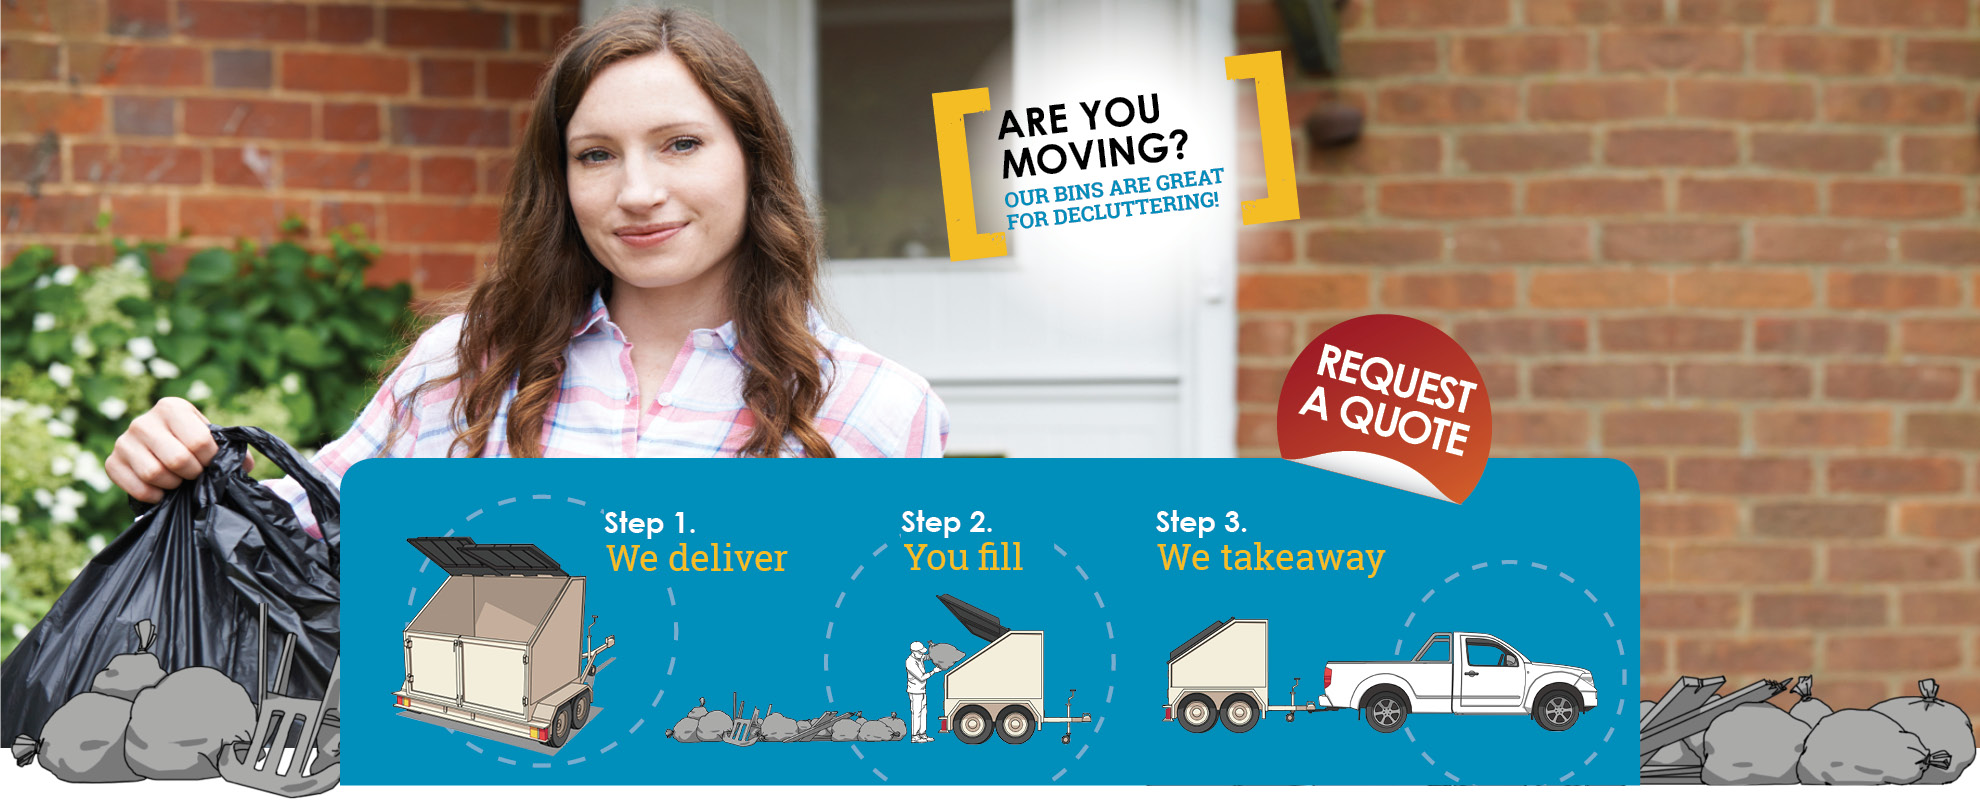 towaway trash, mobile bins, rubbish removal for moving house